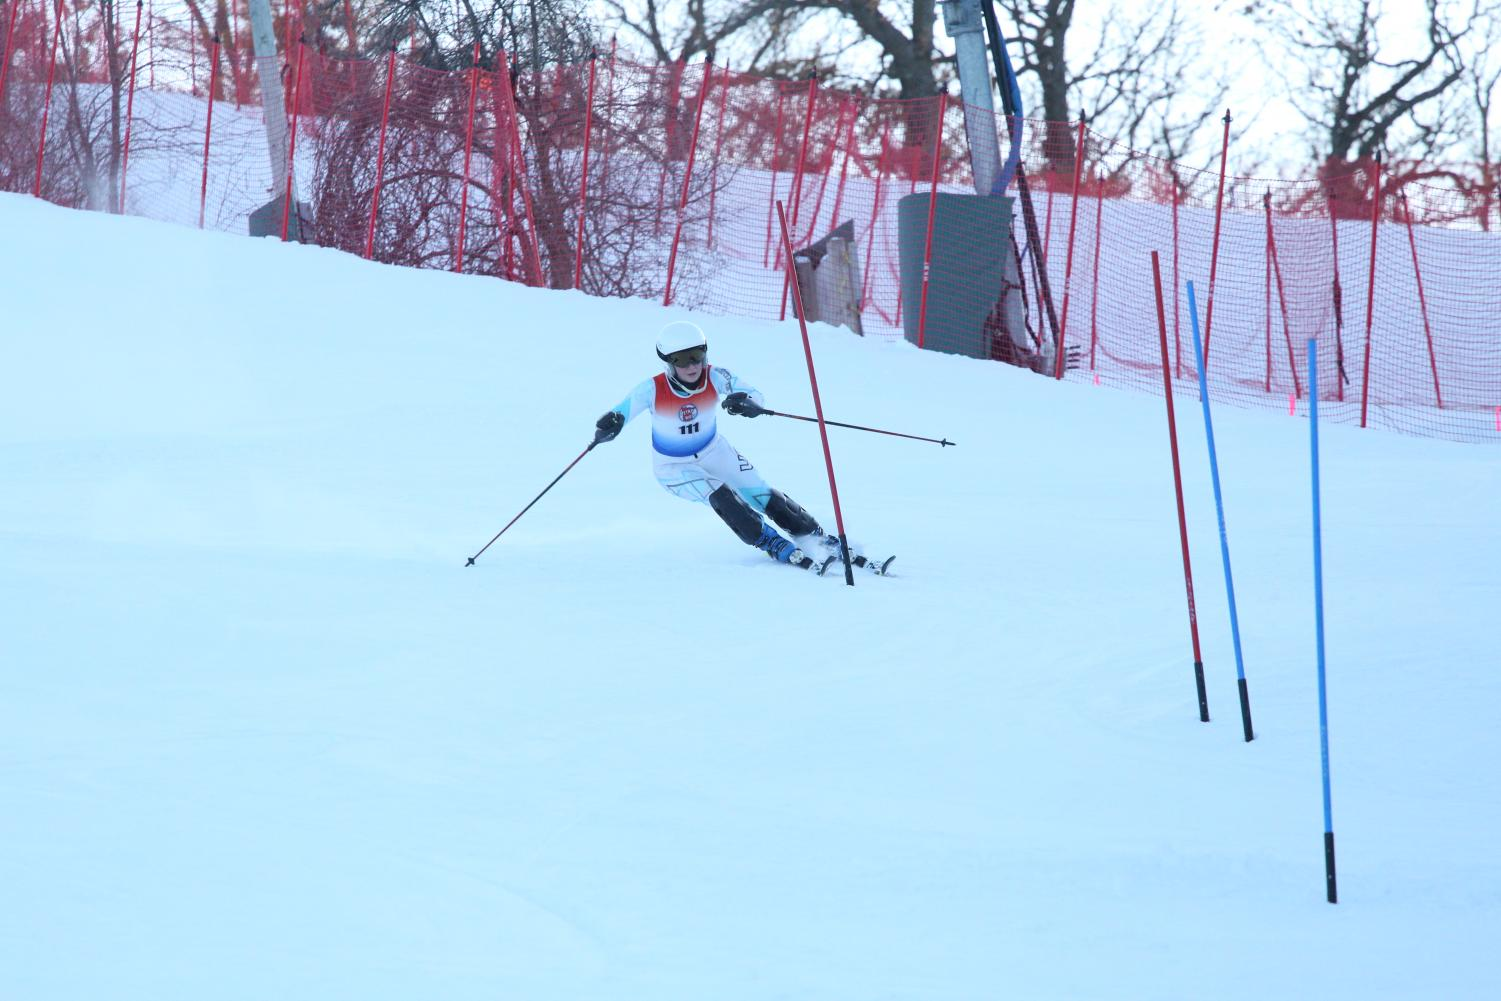 Sophomore Abigail Swanson hitting a gate at Afton Alps